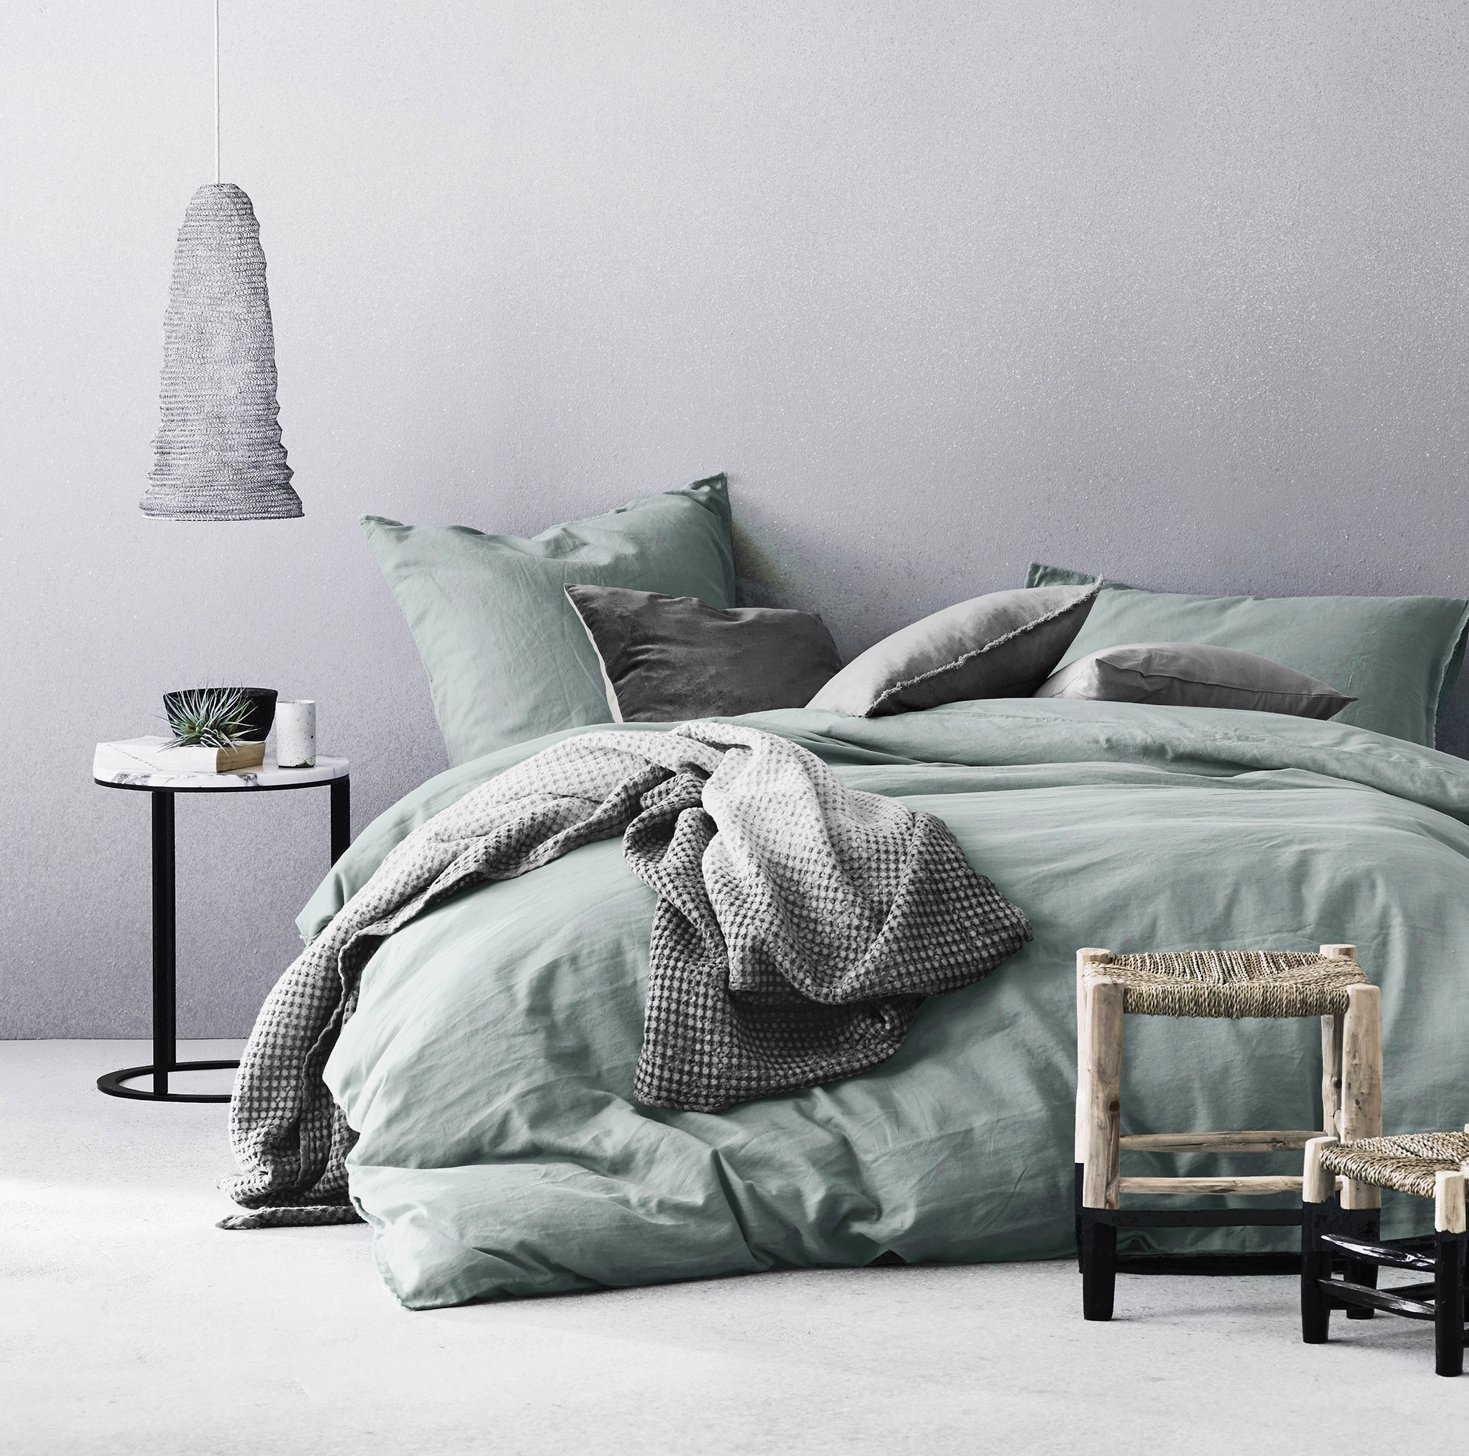 washed feel look set duvet bedding natural color dp mint eucalyptus wrinkled queen soft cover modern cotton solid chambray relaxed casual style